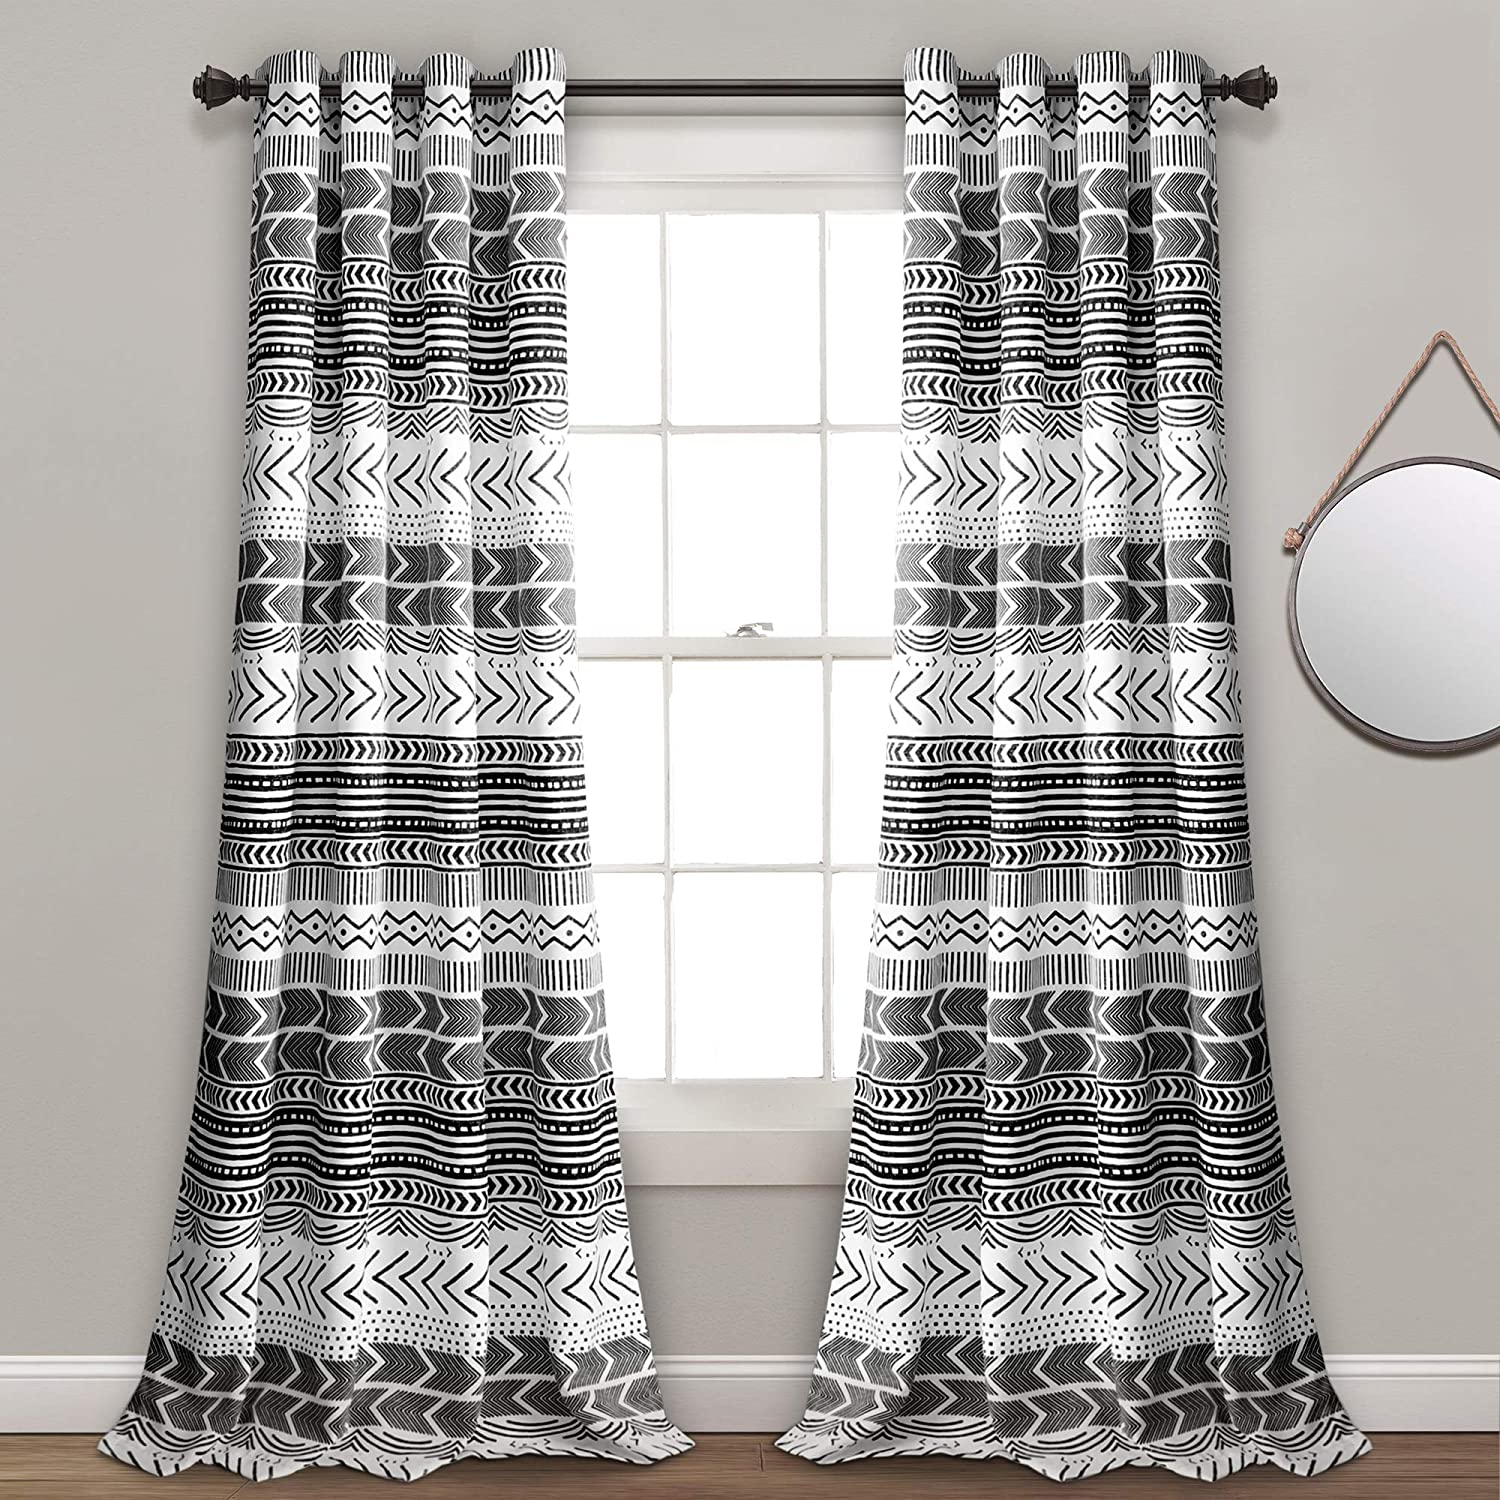 "Lush Decor Hygge Geo Room Darkening Window Curtain Panel Pair, 84"" x 52"", Black & White"